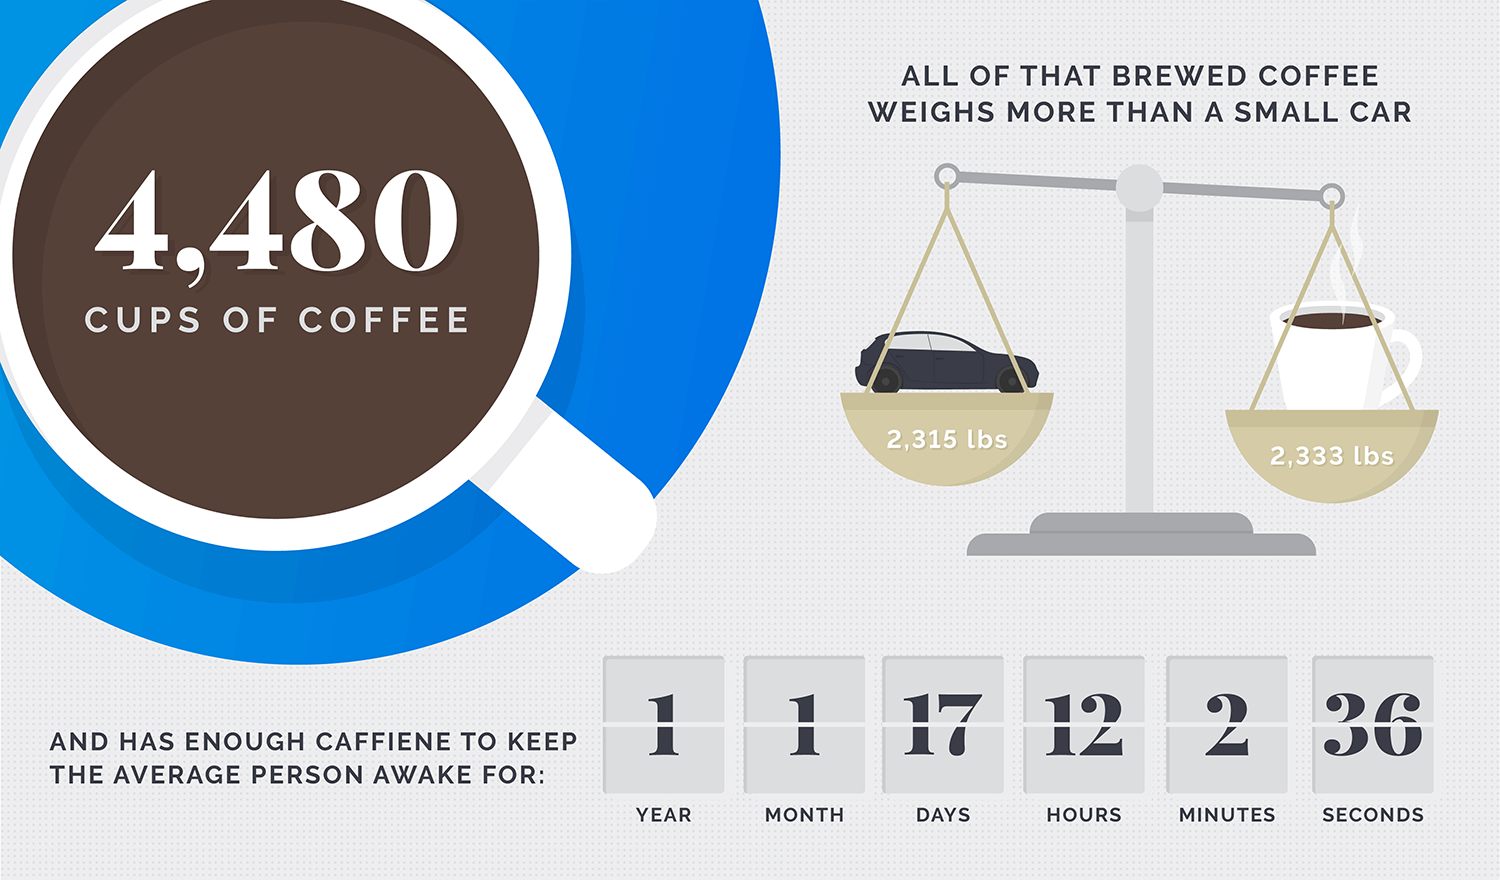 Summary of Coffee Consumption